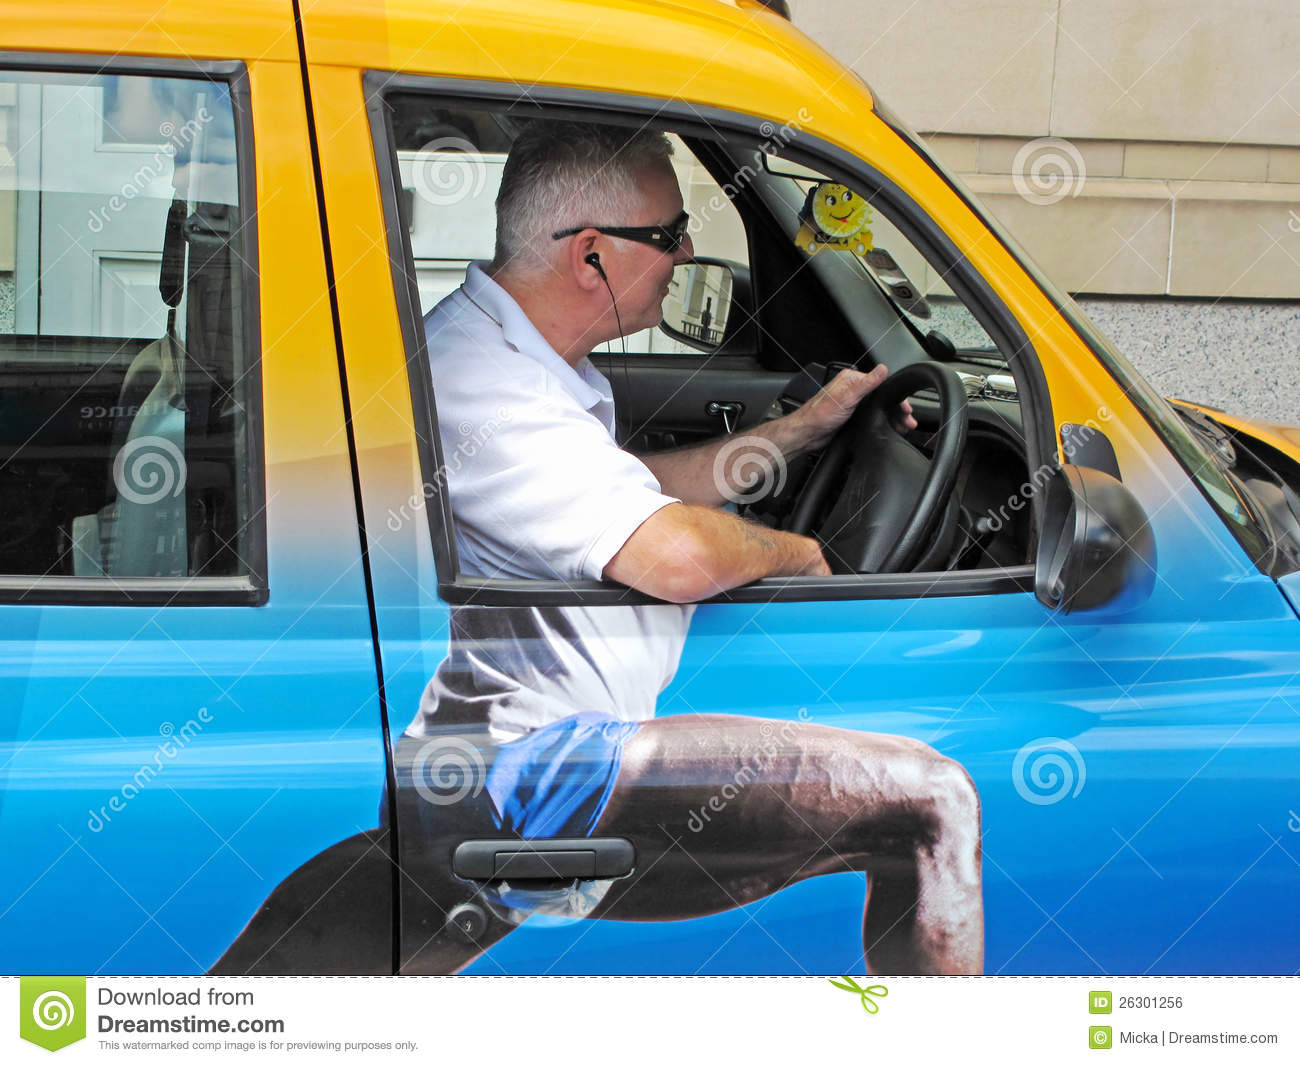 Image result for cab driver london funny picture